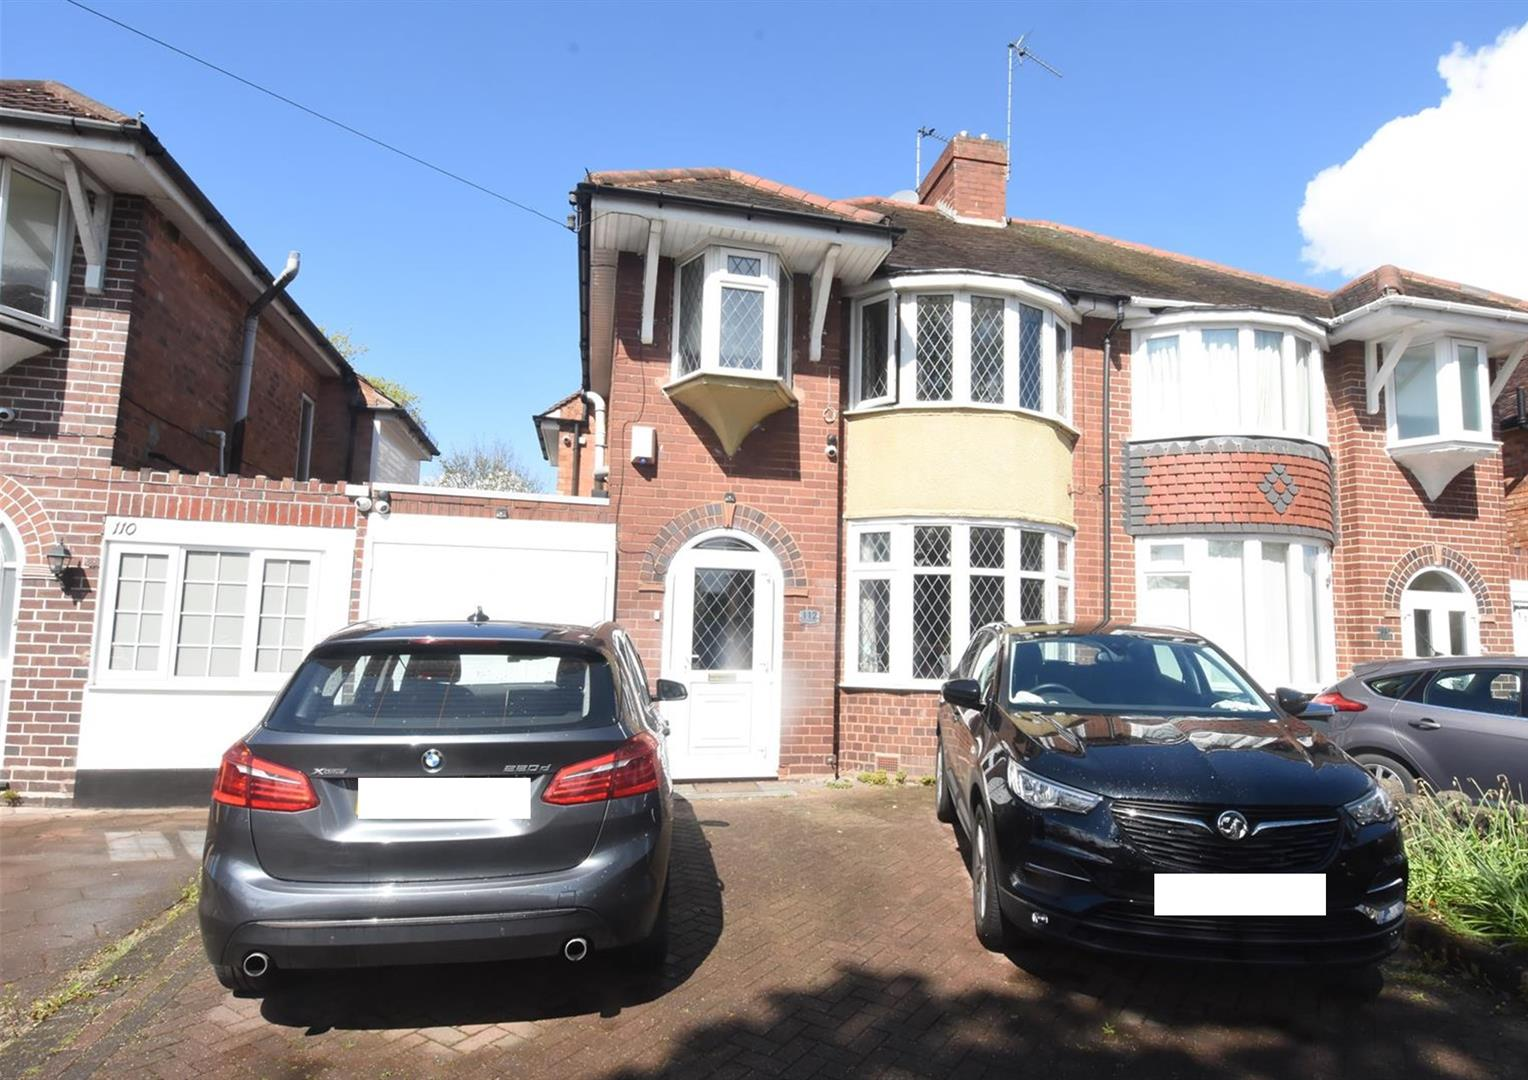 3 bed house for sale in Rymond Road, Hodge Hill, Birmingham, B34